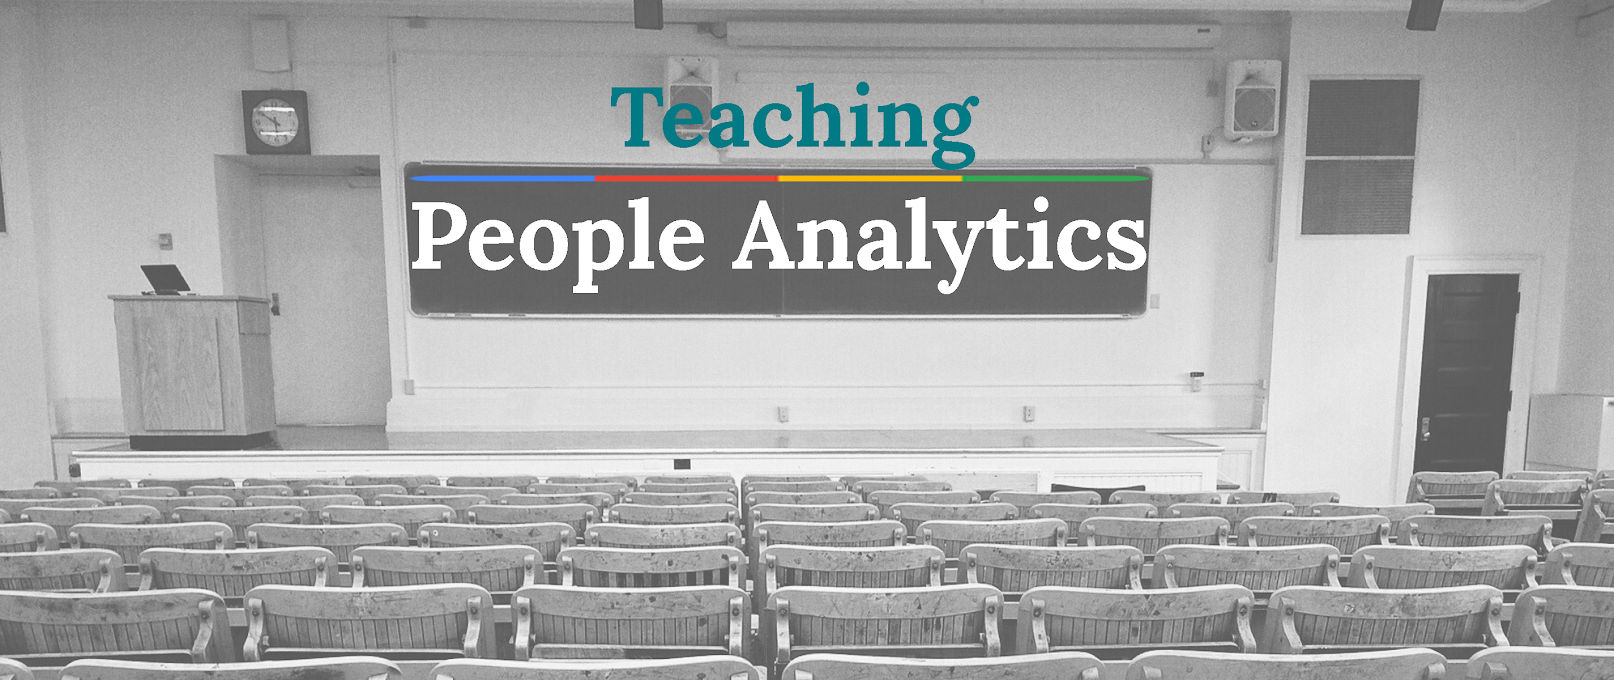 Let's use People Analytics to change how we teach HR